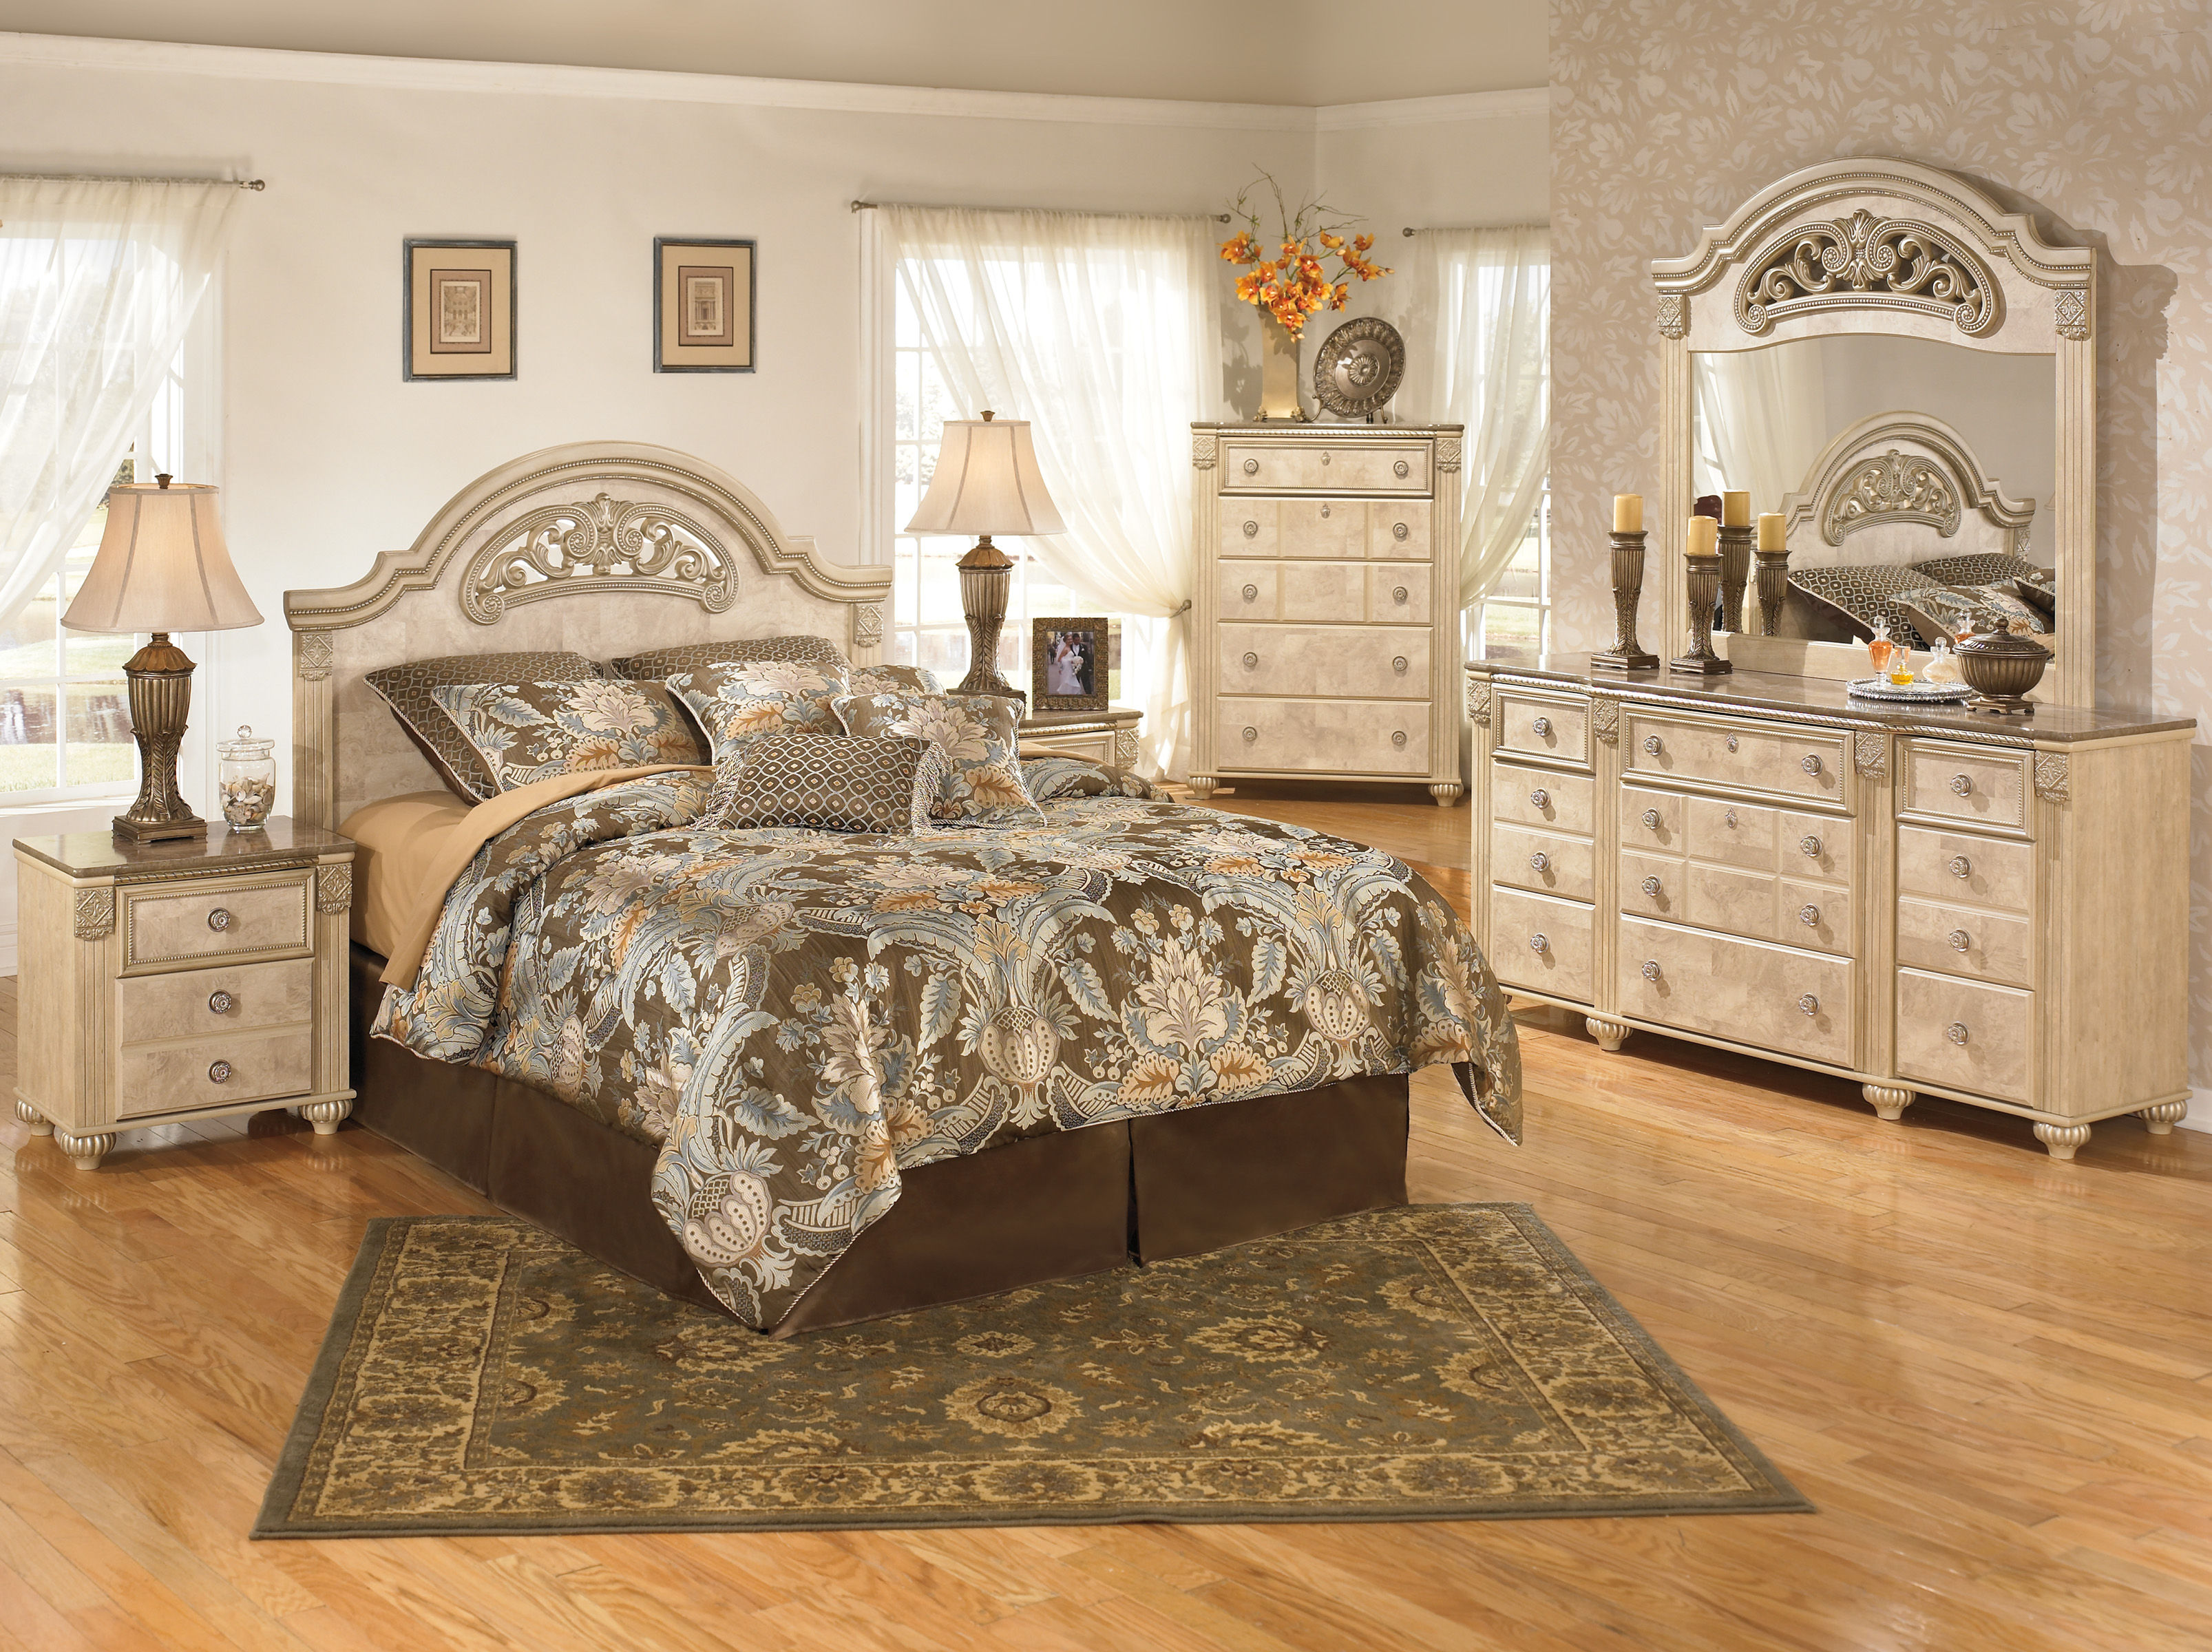 Bedroom Sets Light Wood saveaha light brown wood marble 2pc bedroom set w/queen poster bed